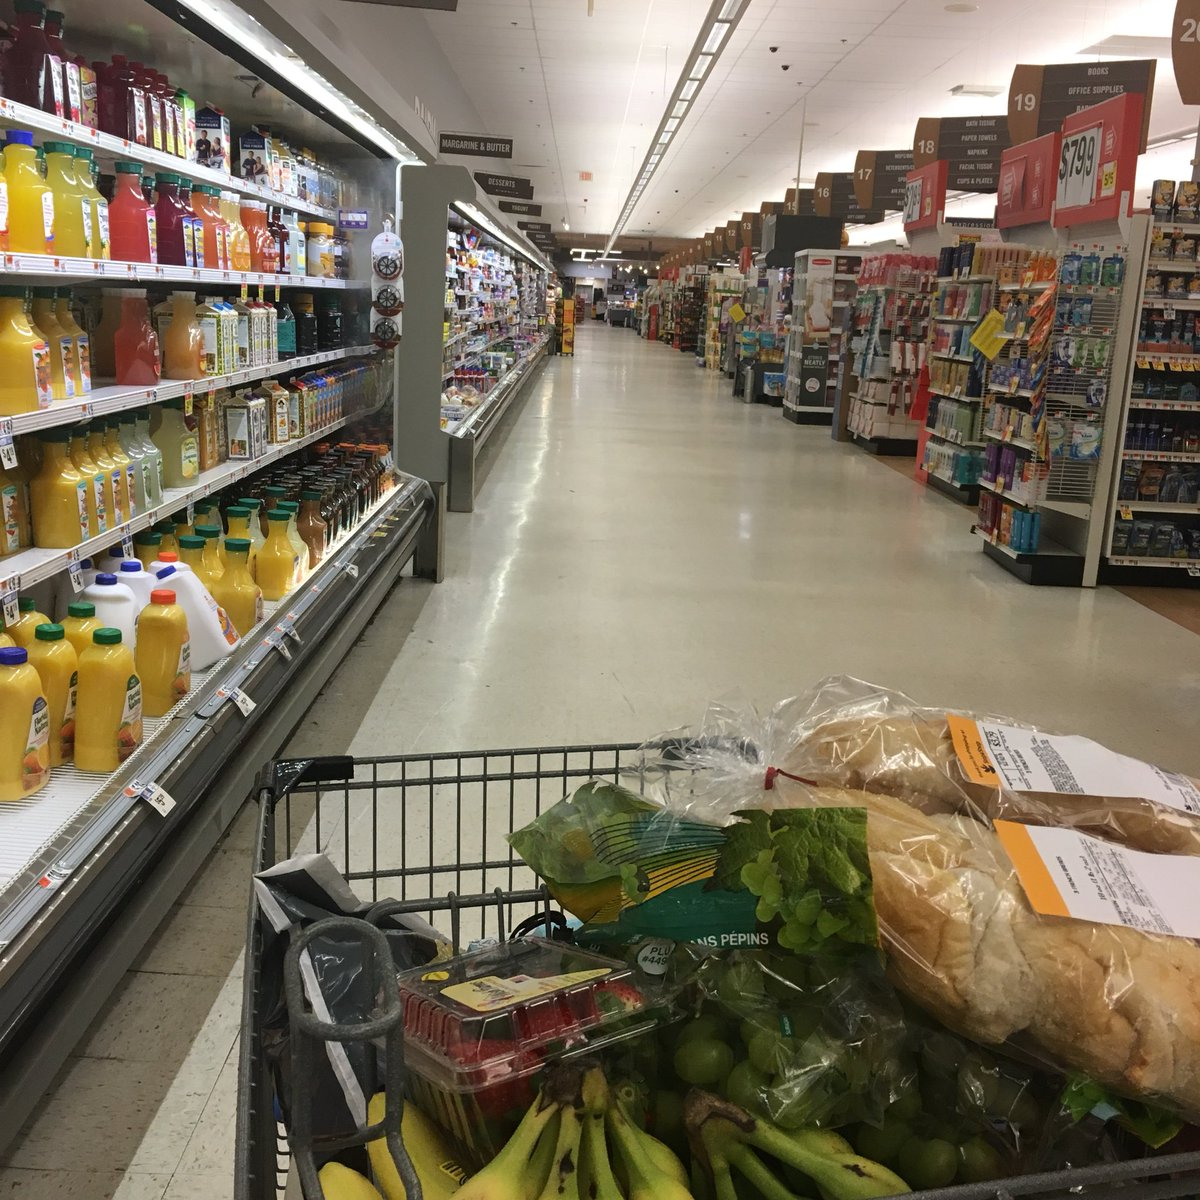 big family life hack: grocery shopping during the super bowl. nobody here. #go